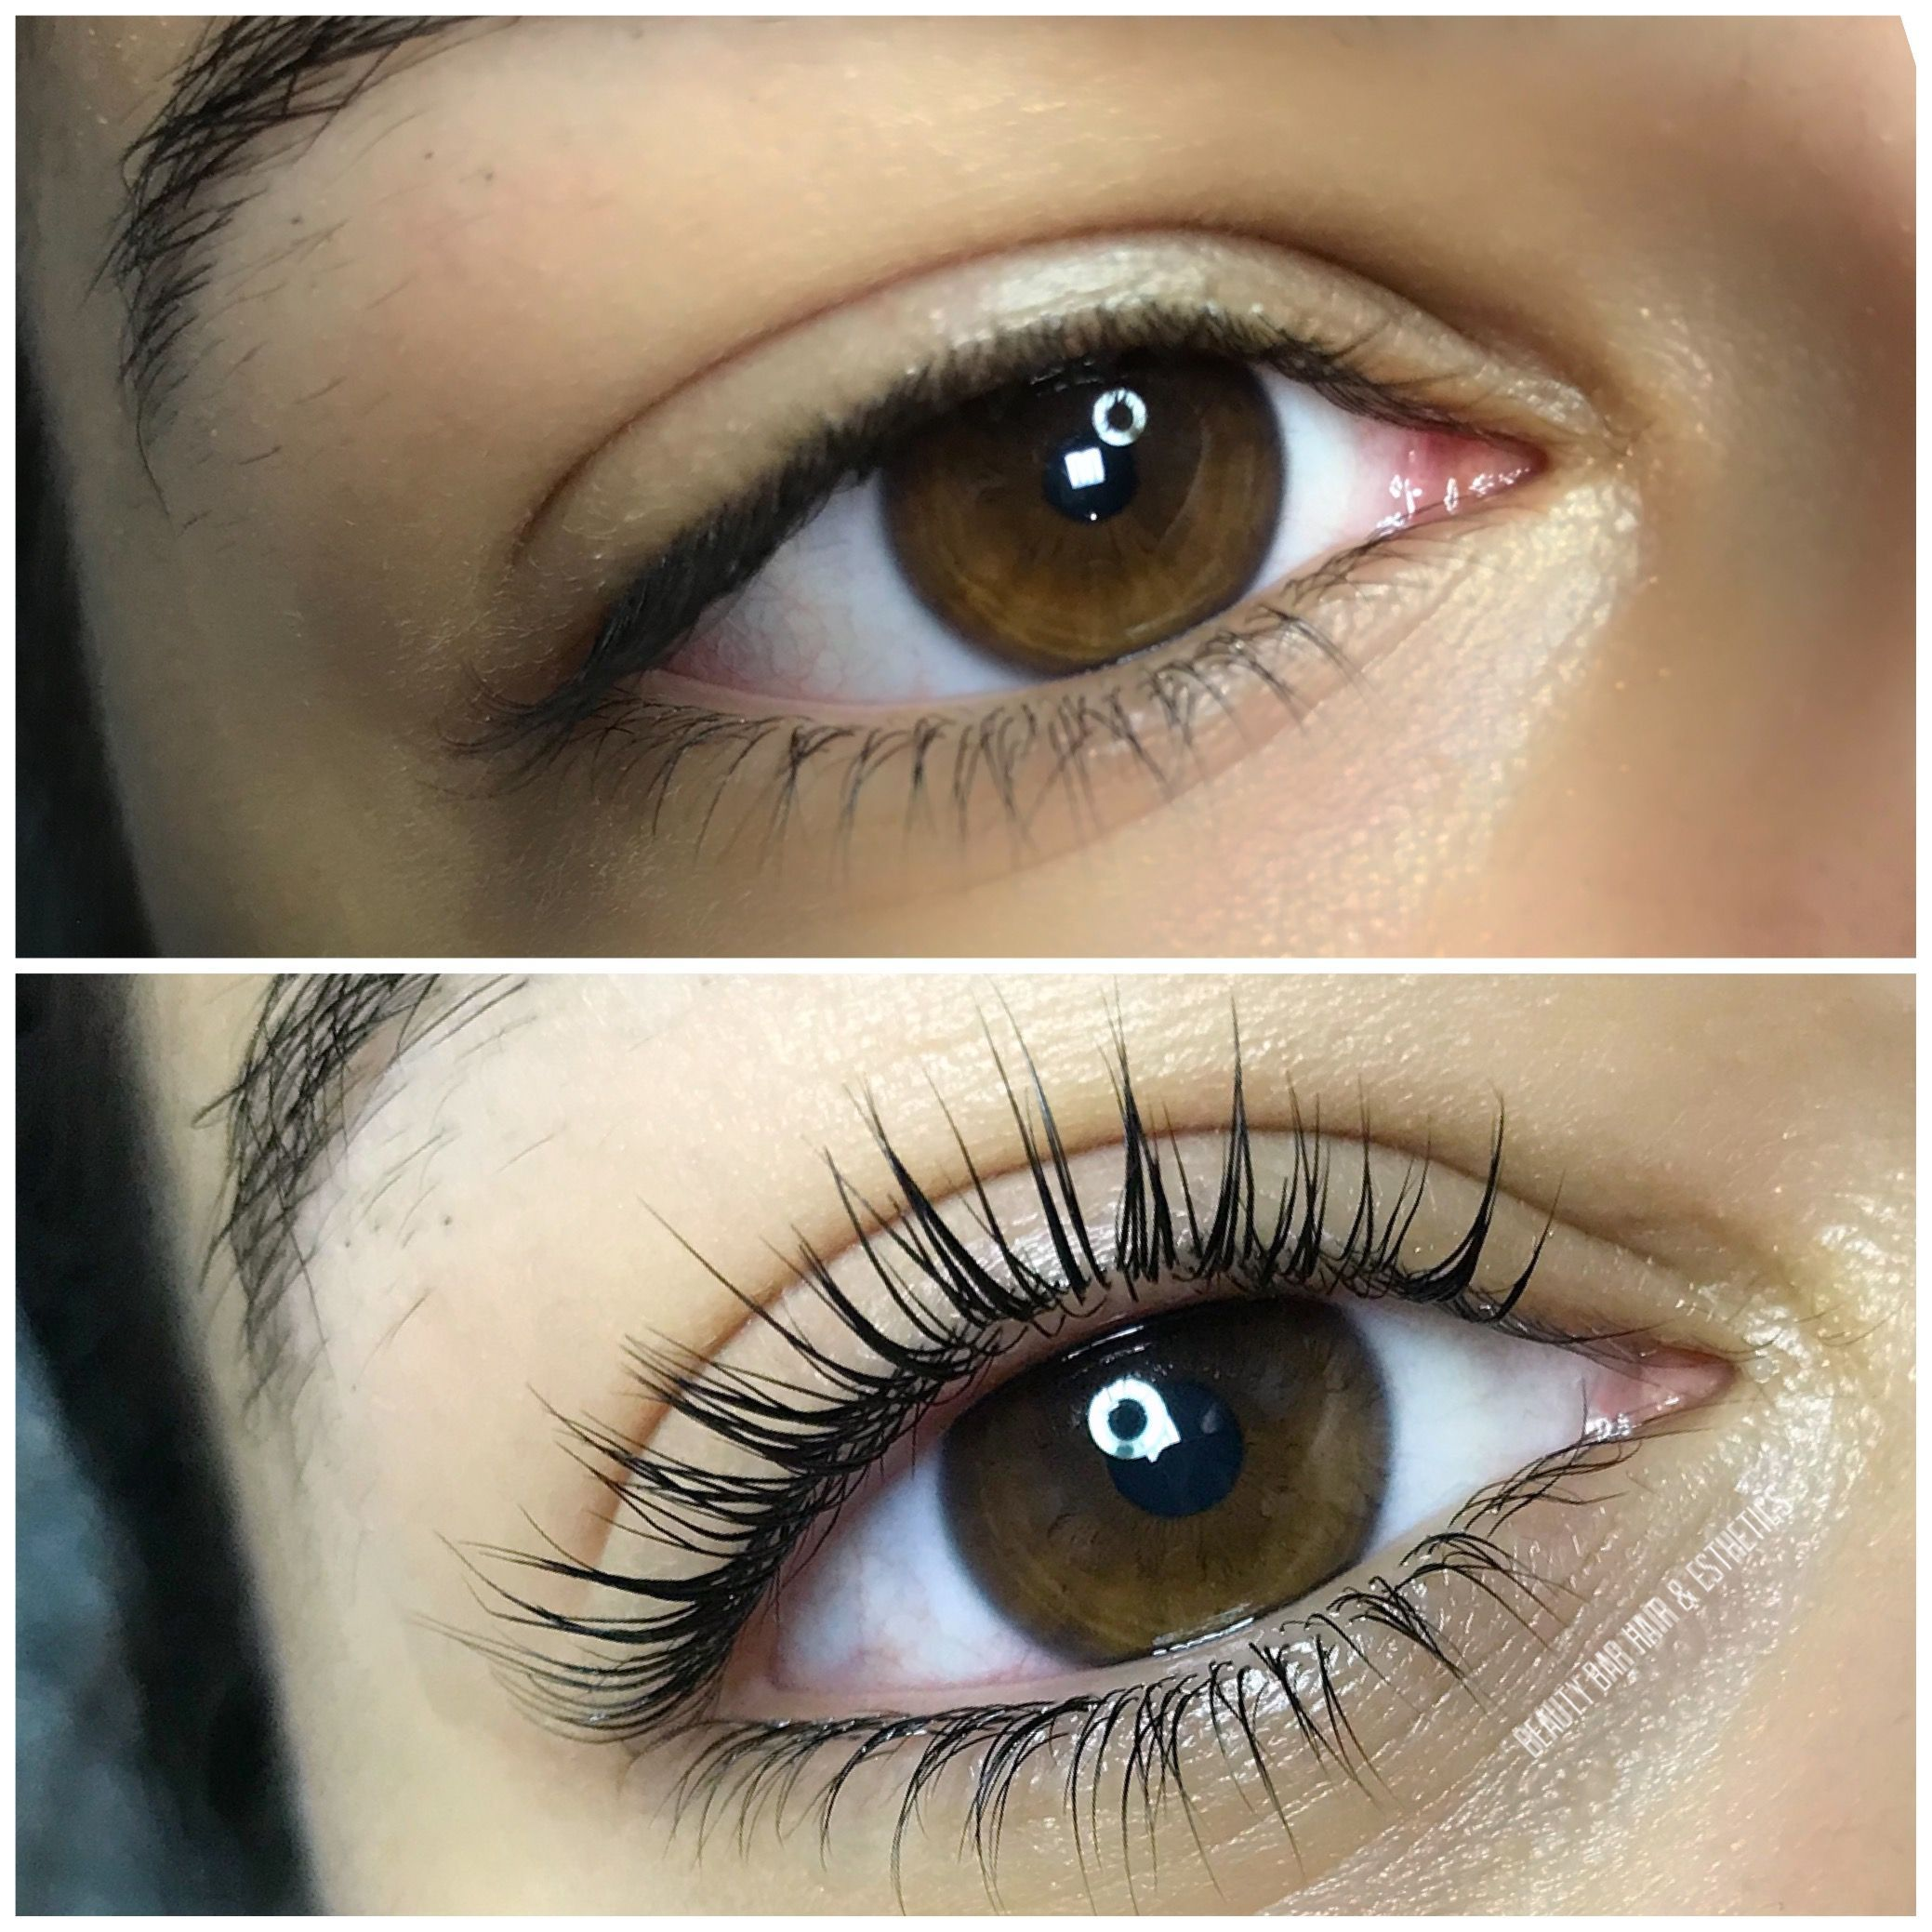 12a7a57d36d Lash Lift & Tint Lashes appear longer and fuller. Great service for people  who don't like or can't have extensions. Beauty Bar Hair & Esthetics #Lashes